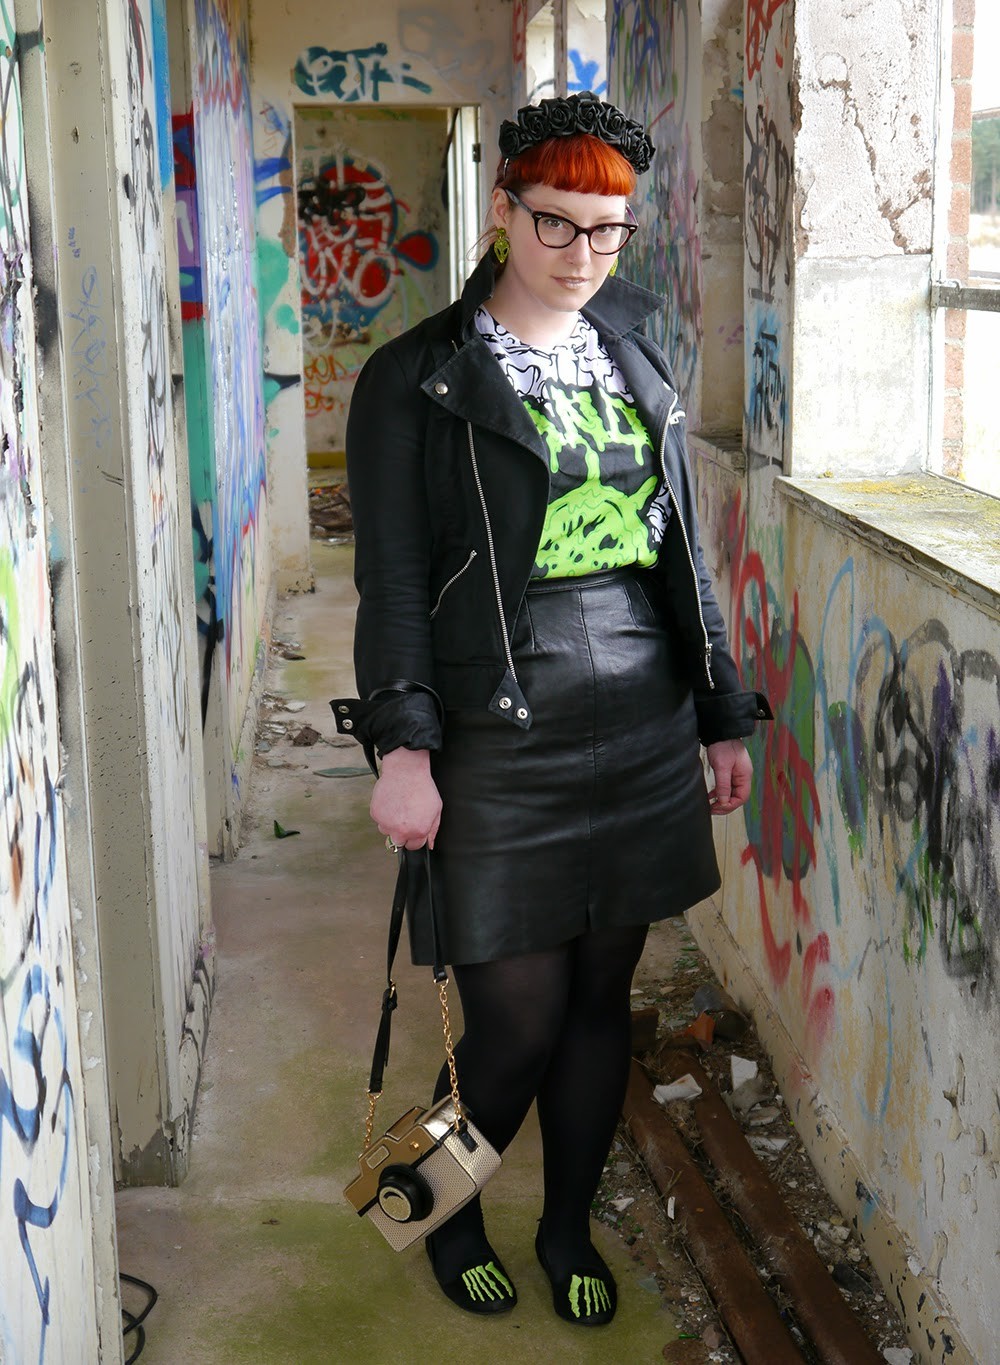 Styled by Helen, space style, scottish blogger, red head, ginger, Abandon Ship, Abandon Ship Apparel, slim tshirt, H&M biker jacekt, Sugar and Vice, Sugar & Vice, Alien earrings, alien style, outerspace styling, Carnabys, vintage leather skirt, Youth Rise Up, skeleton slippers, skeleton shoes, bone shoes, Accessorize, camera shaped bag